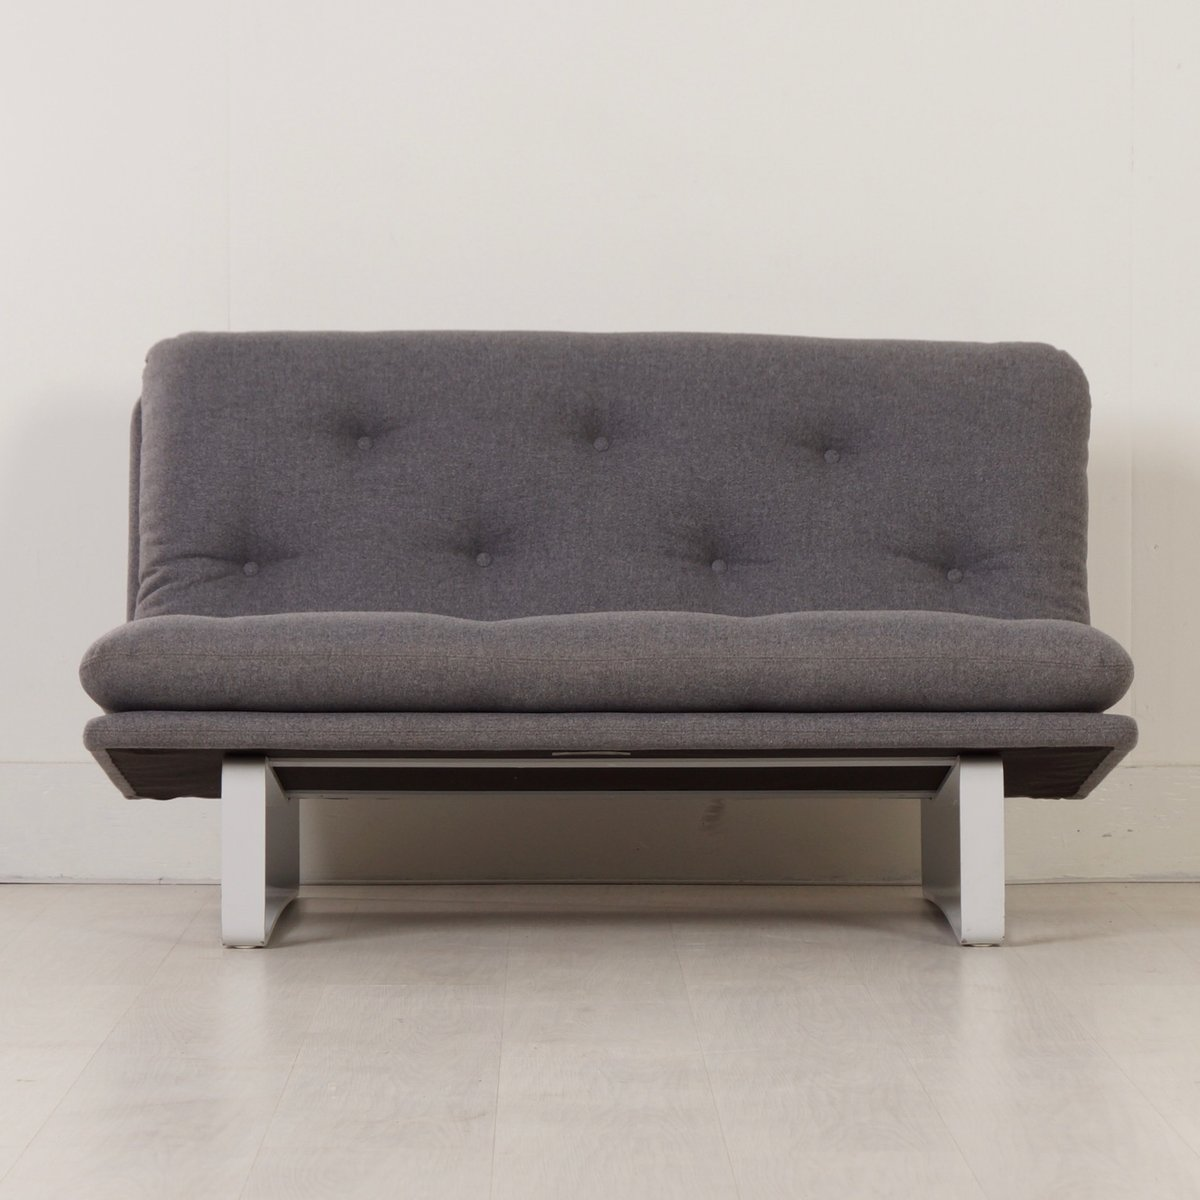 Grey c684 sofa by kho liang ie for artifort 1960s for for Grey sofas for sale